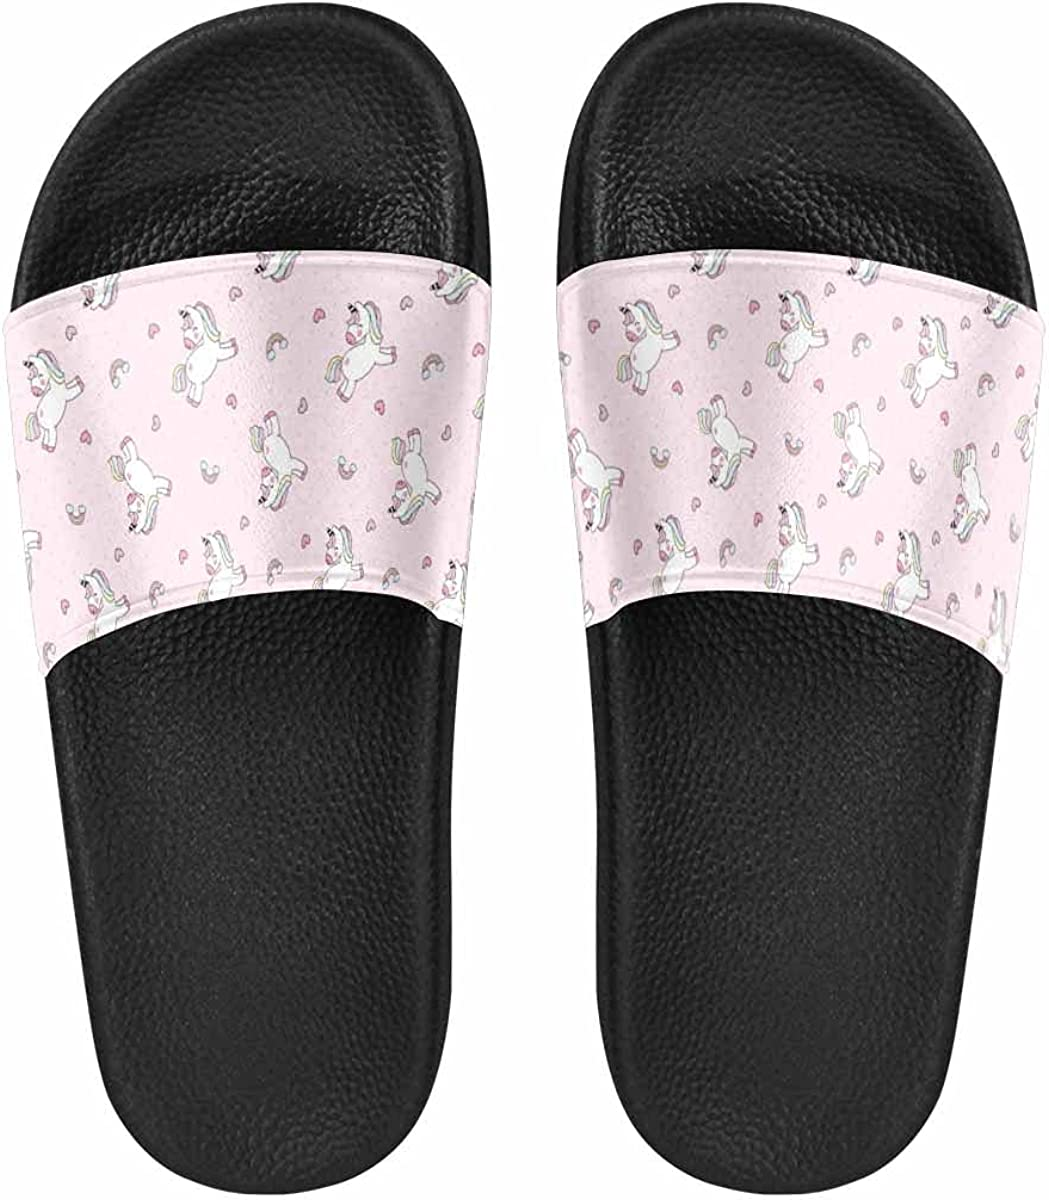 InterestPrint Cute Simple Watermelon with Dots Women's Slide Sandal Light Weight Cozy Outdoor Ladies Shoes